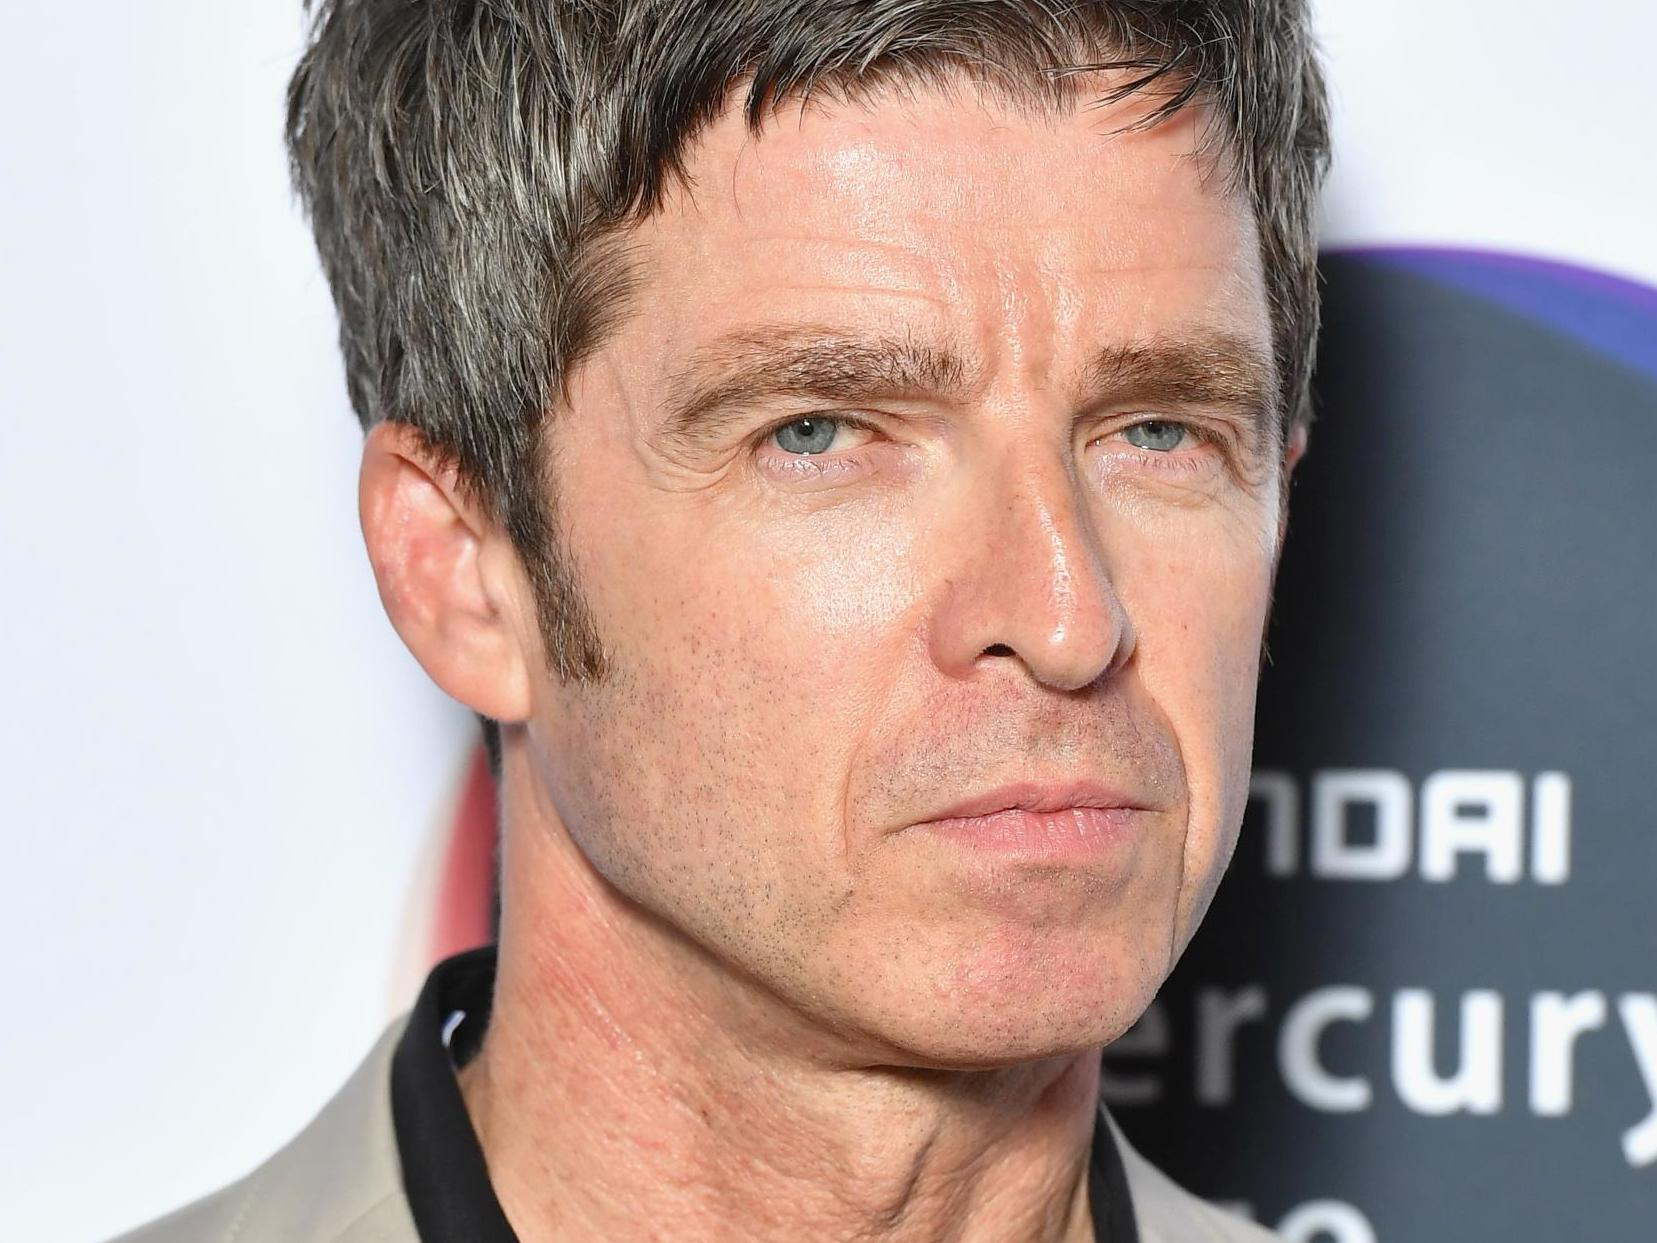 Noel Gallagher says 'moron' brother Liam's tweets are reason Oasis will never reunite